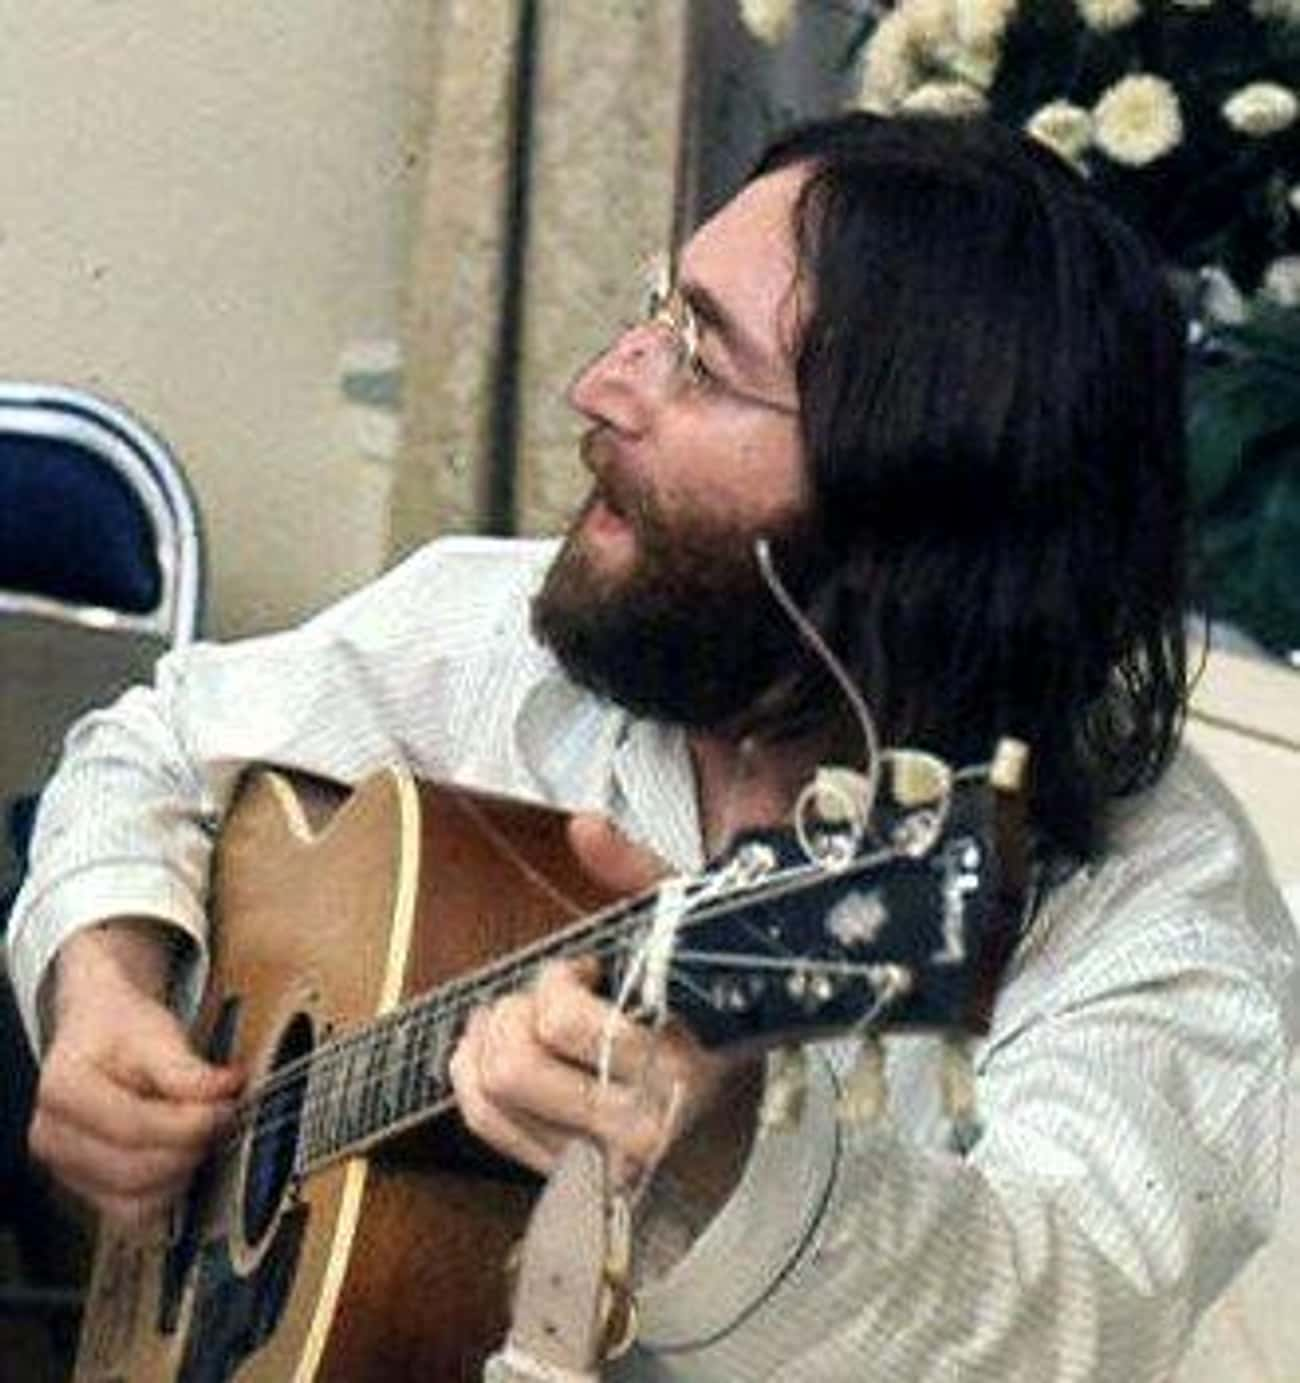 John Lennon Was A Victim Of Th is listed (or ranked) 1 on the list 12 Disturbing Stories You Might Not Have Heard About The Beatles